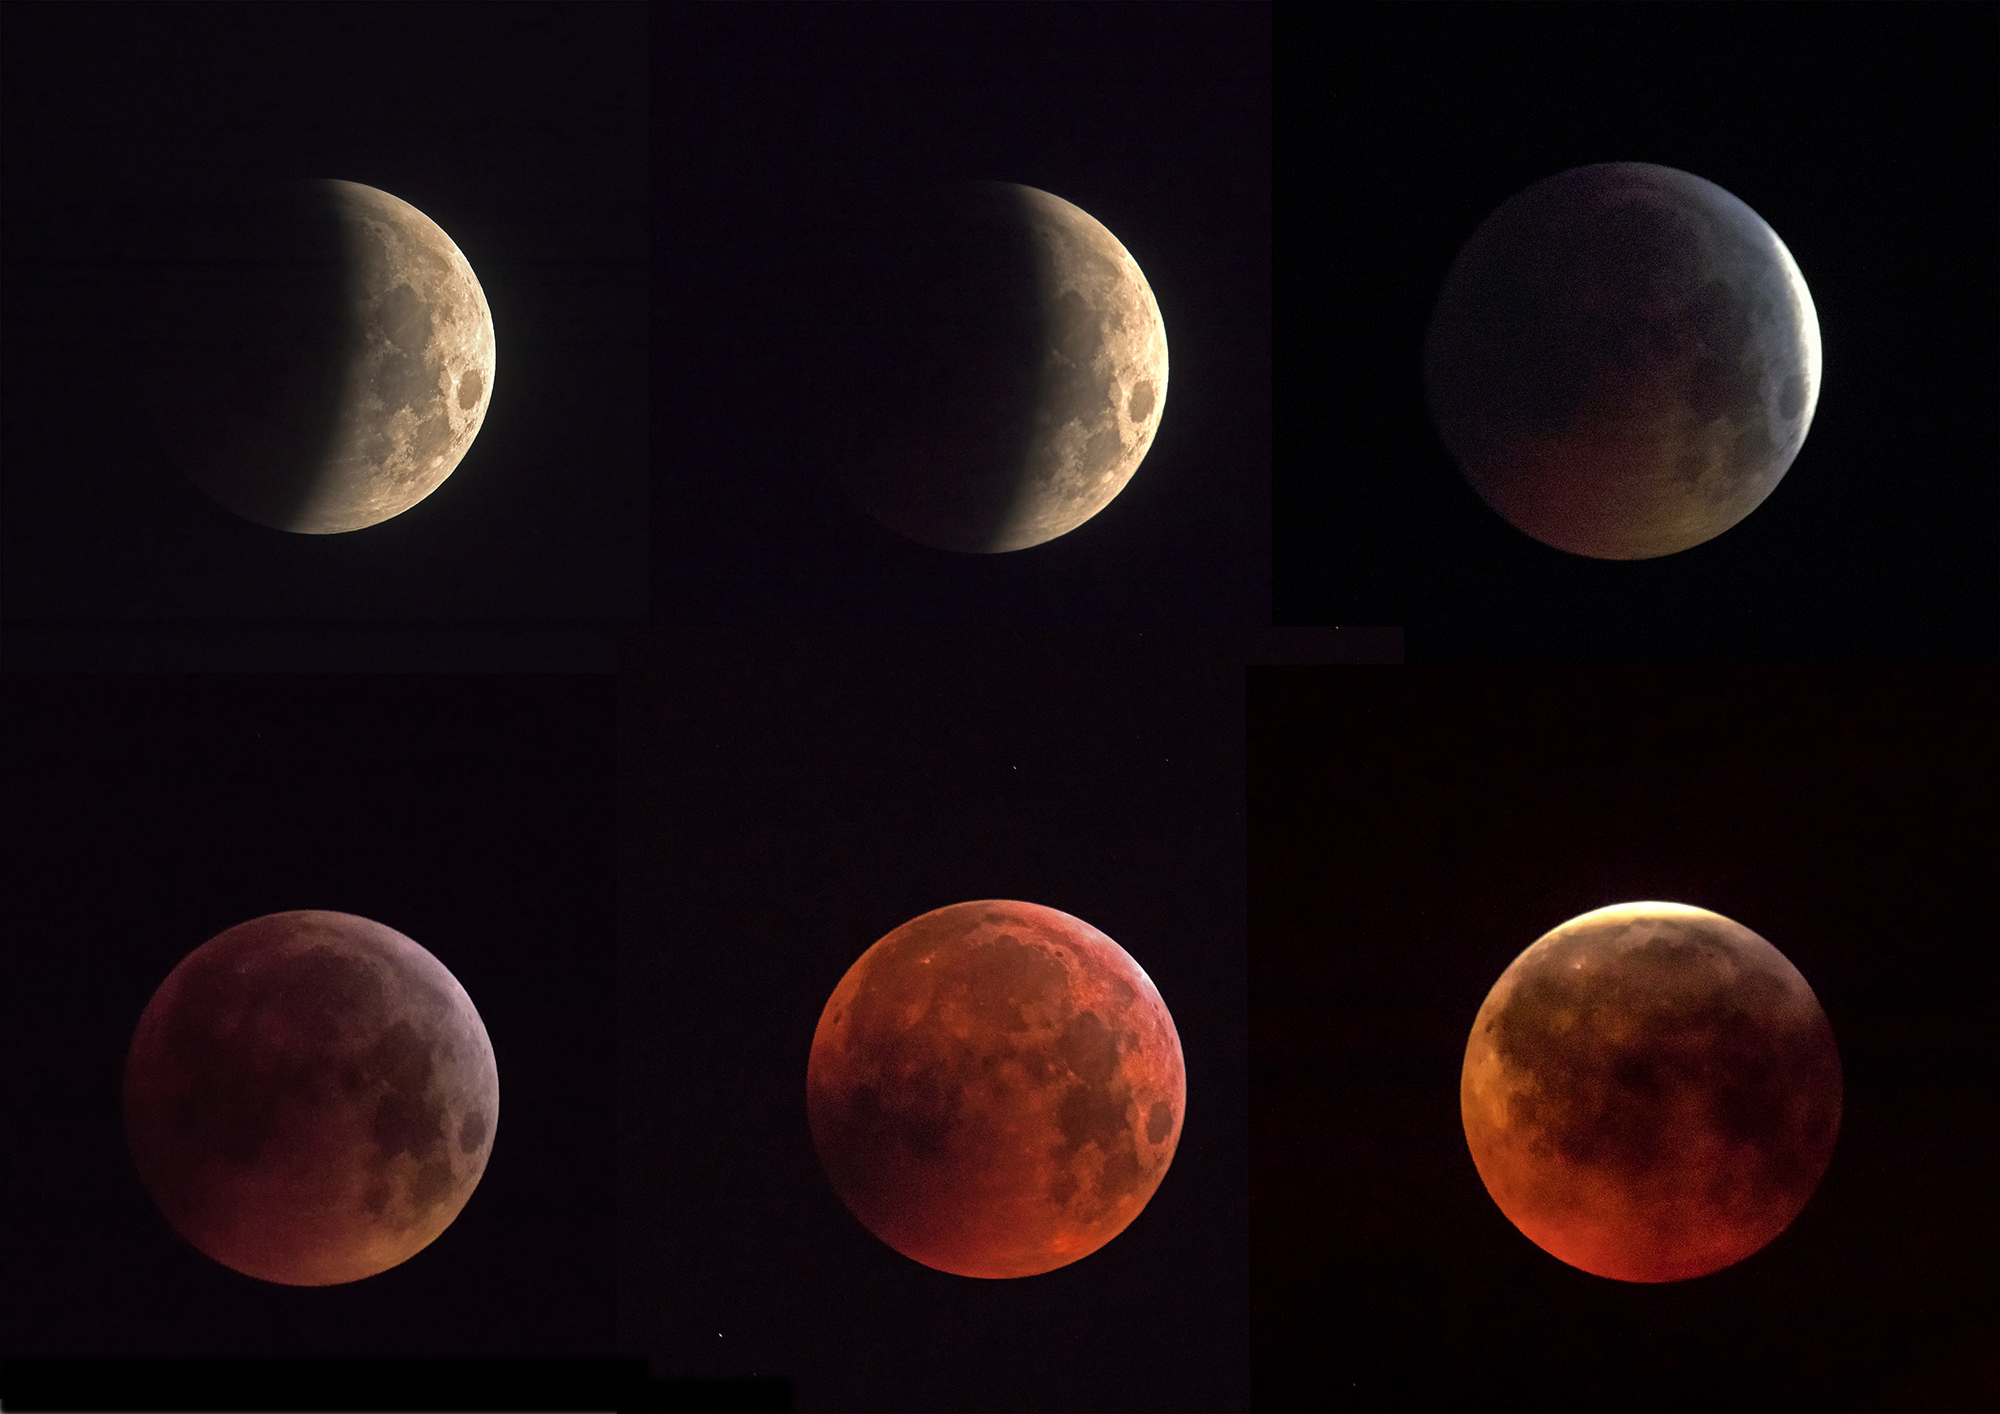 moon eclipse of the day...